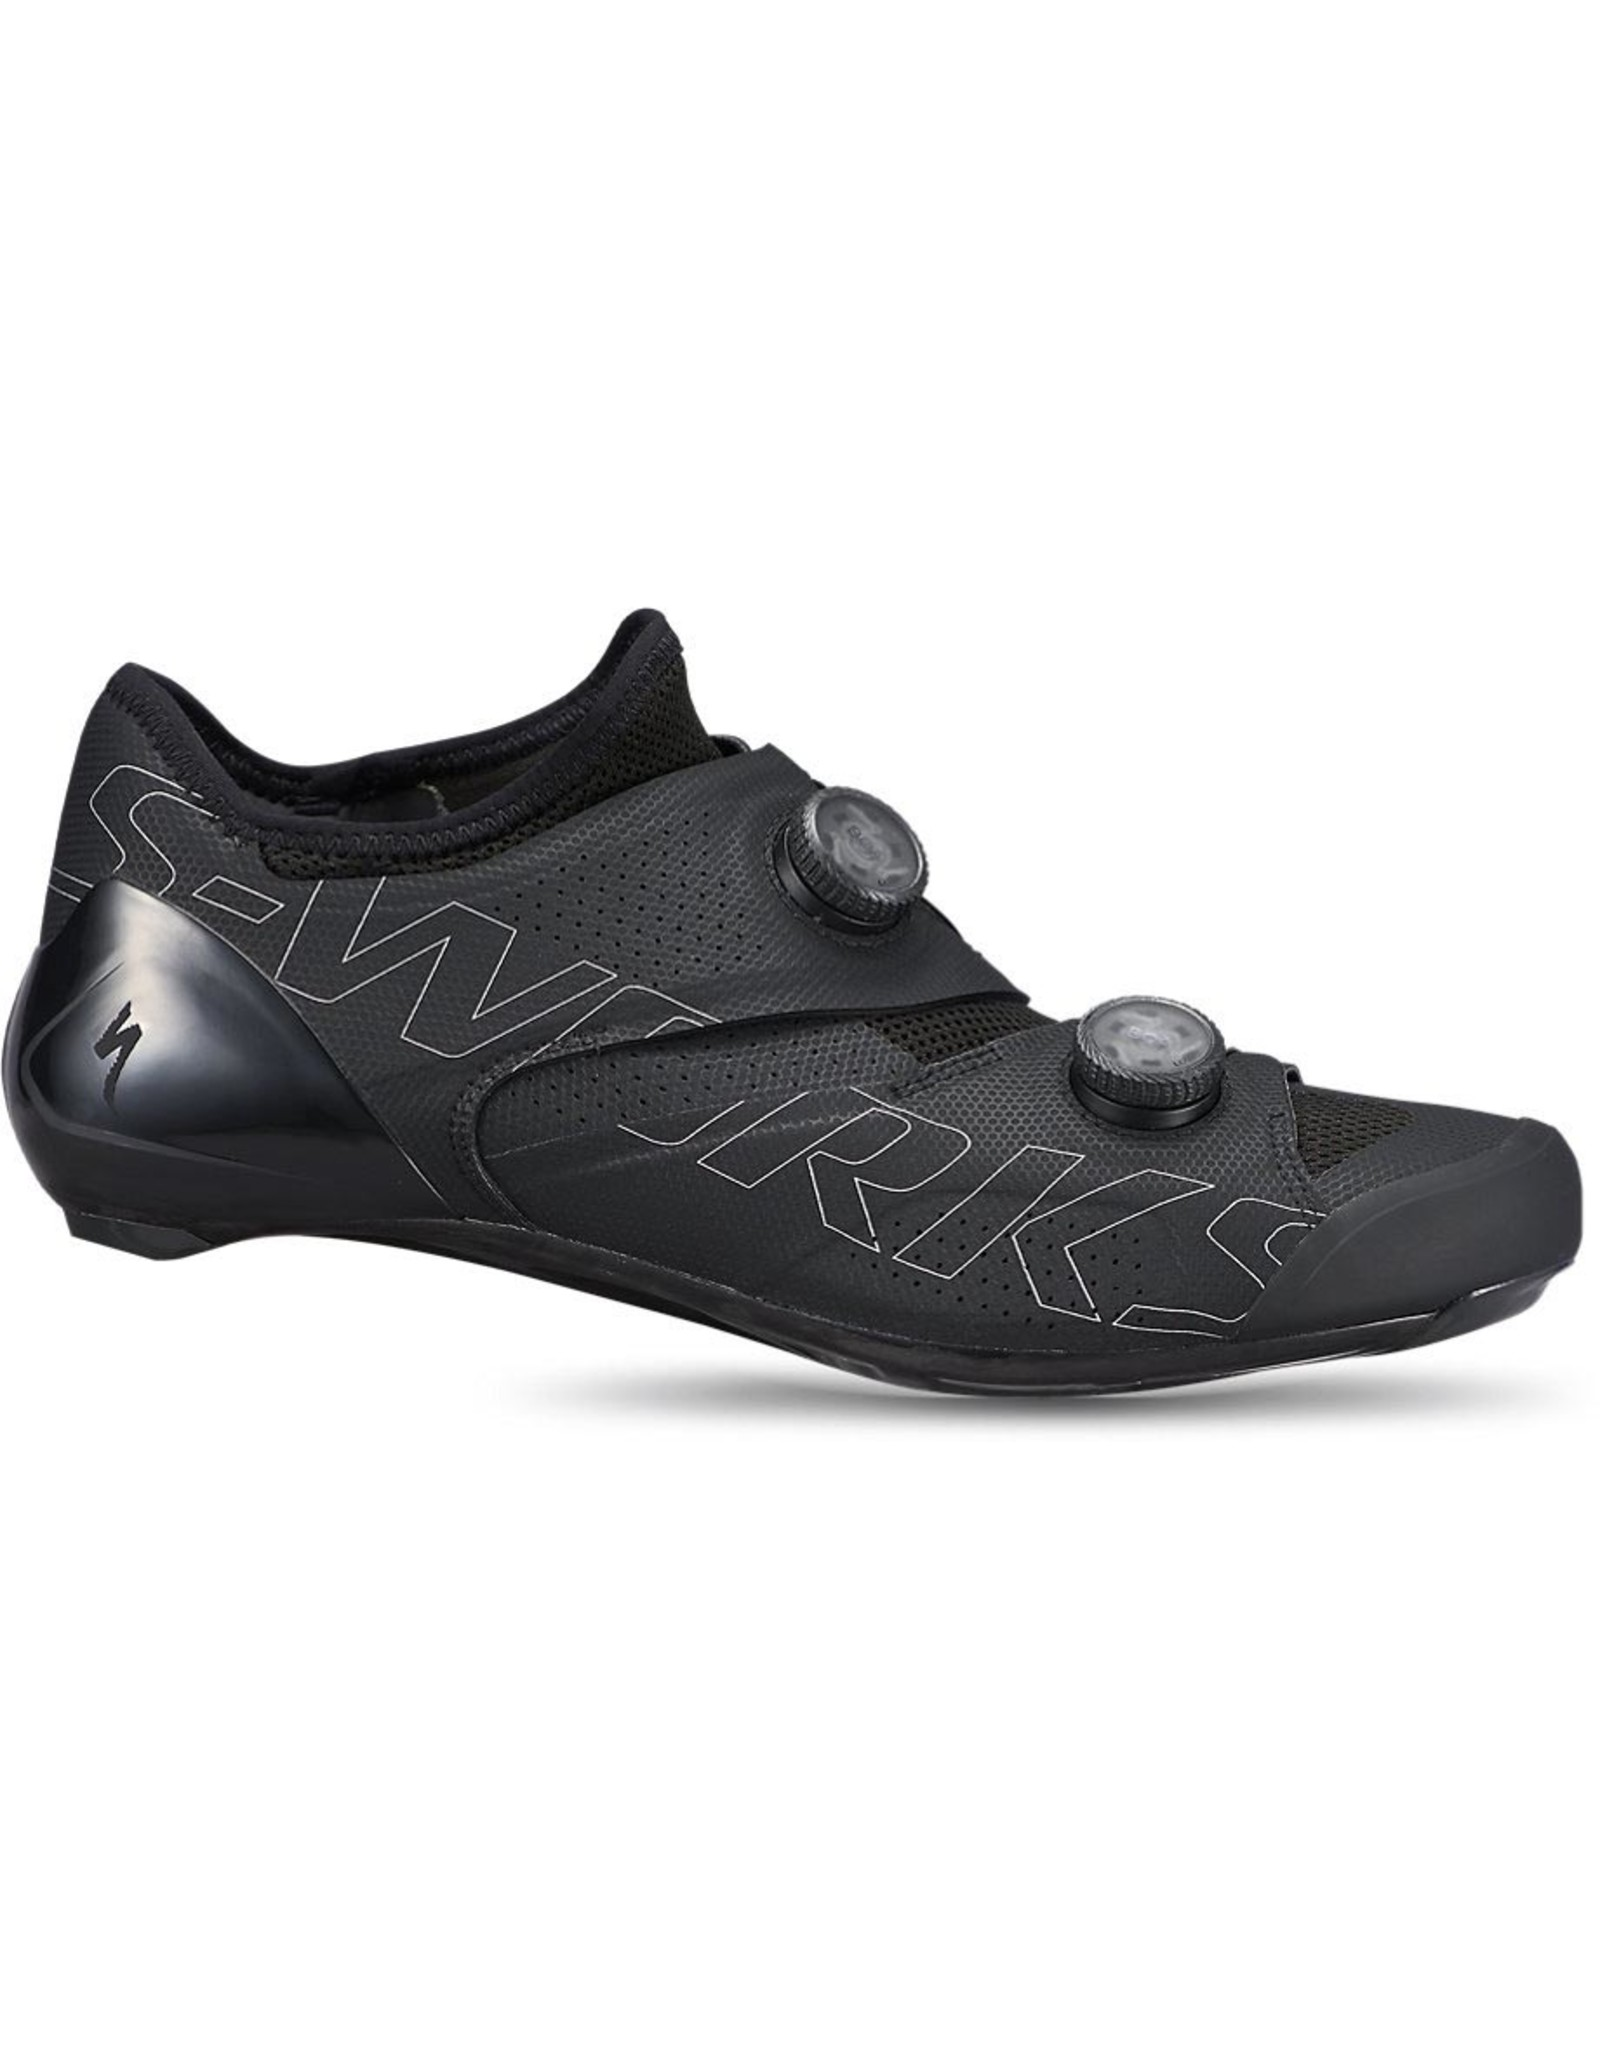 Specialized SW ARES RD SHOE